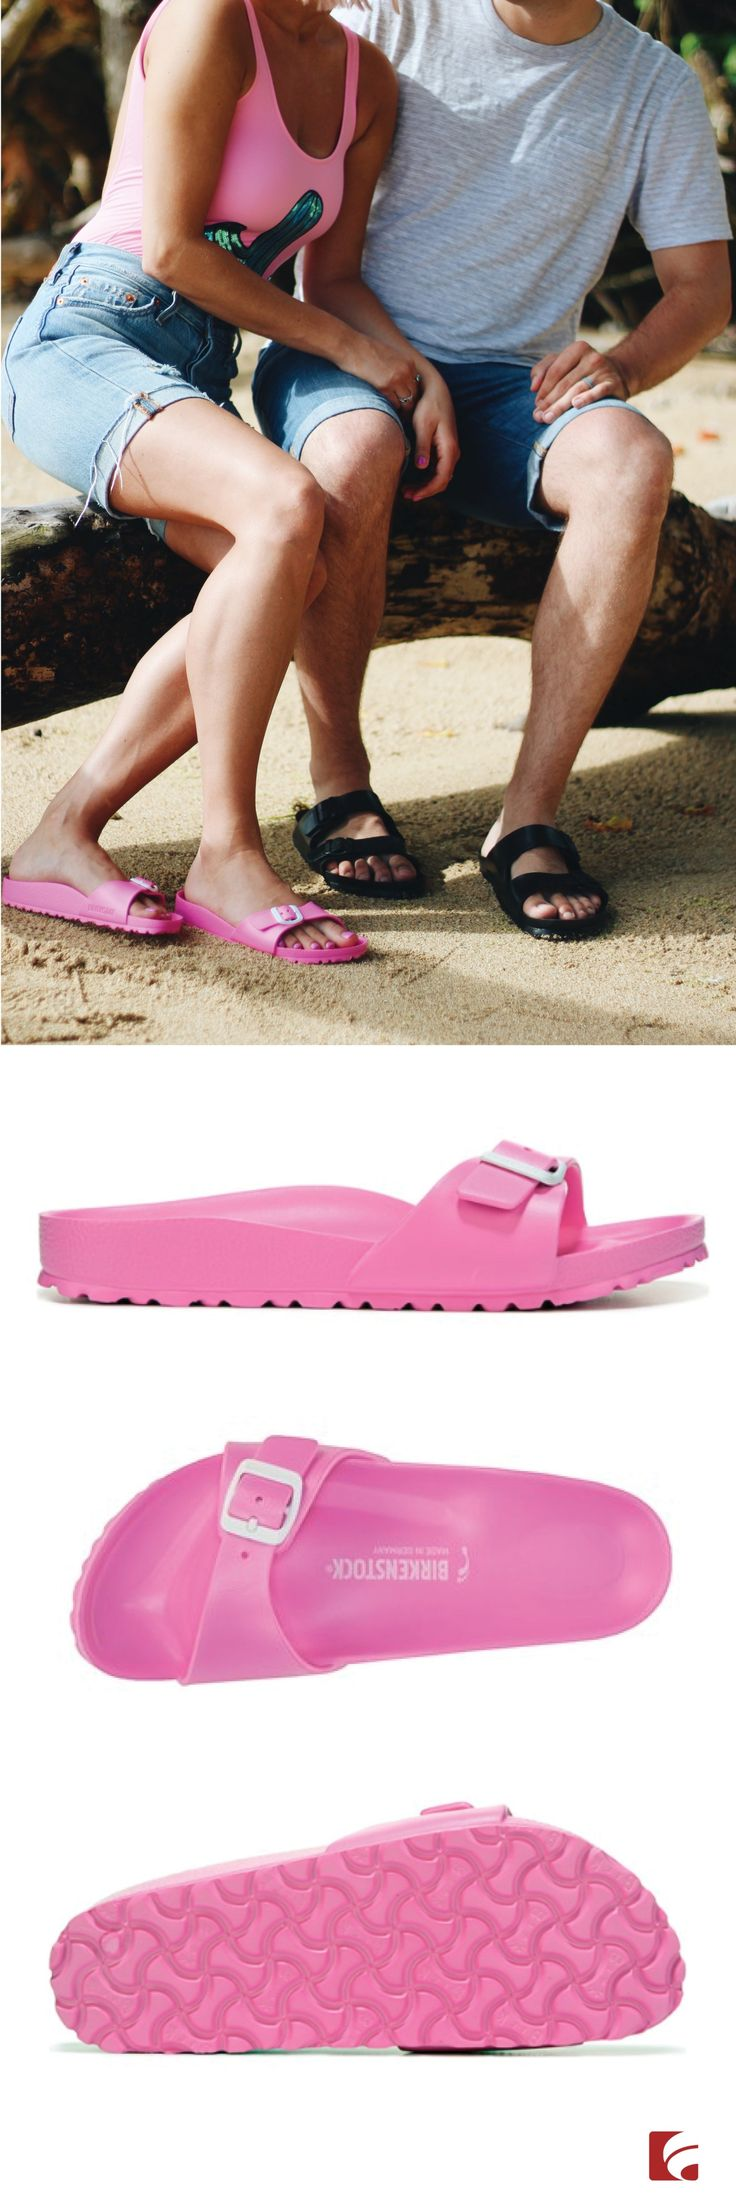 Say hello to easy, beachy summer style in the Birkenstock Essentials Madrid Sandal! @MadamAndrews rocks her pink Madrid Sandals while lounging on the beach in Hawaii. This waterproof sandal has an EVA upper in slide sandal style with an open toe, as well as adjustable instep strap with a buckle closure. The Madrid also features Birkenstock's signature molded footbed for all-day comfort. Grab all 7 colorful shades of the Madrid this summer!